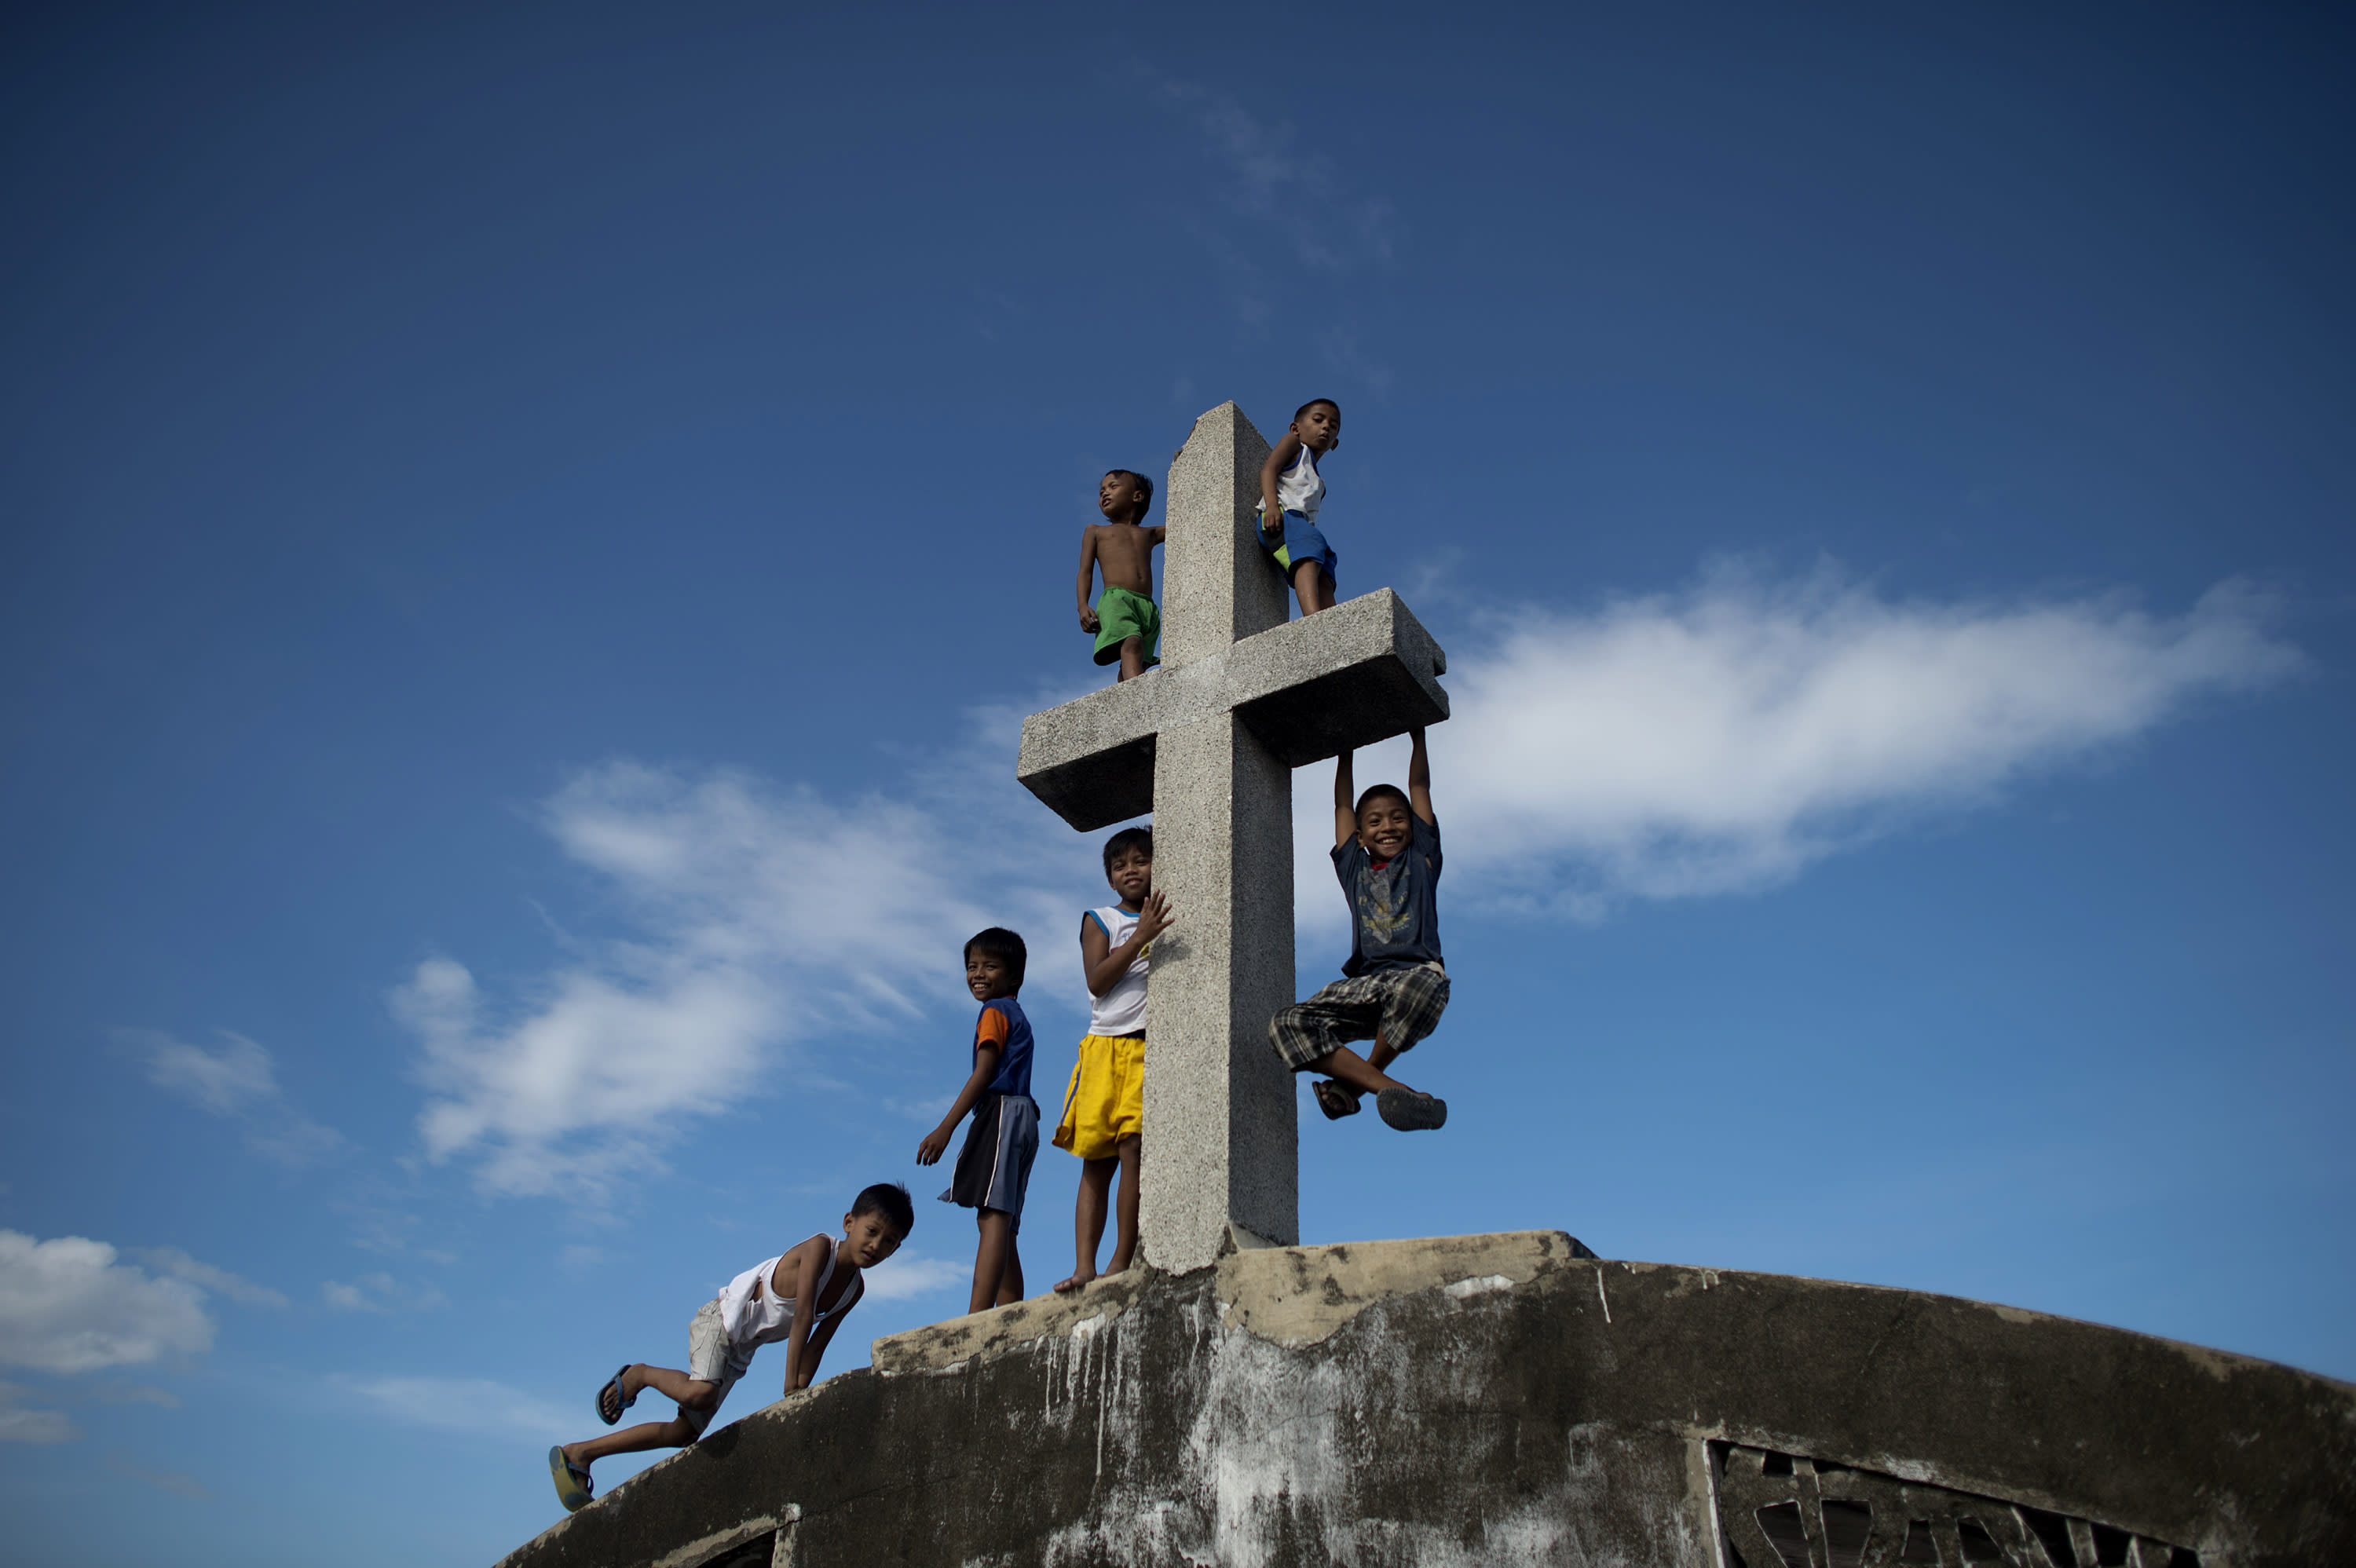 Local boys climb a cross at the Navotas Public Cemetery in Manila, on October 31, 2014 (AFP Photo/Noel Celis)